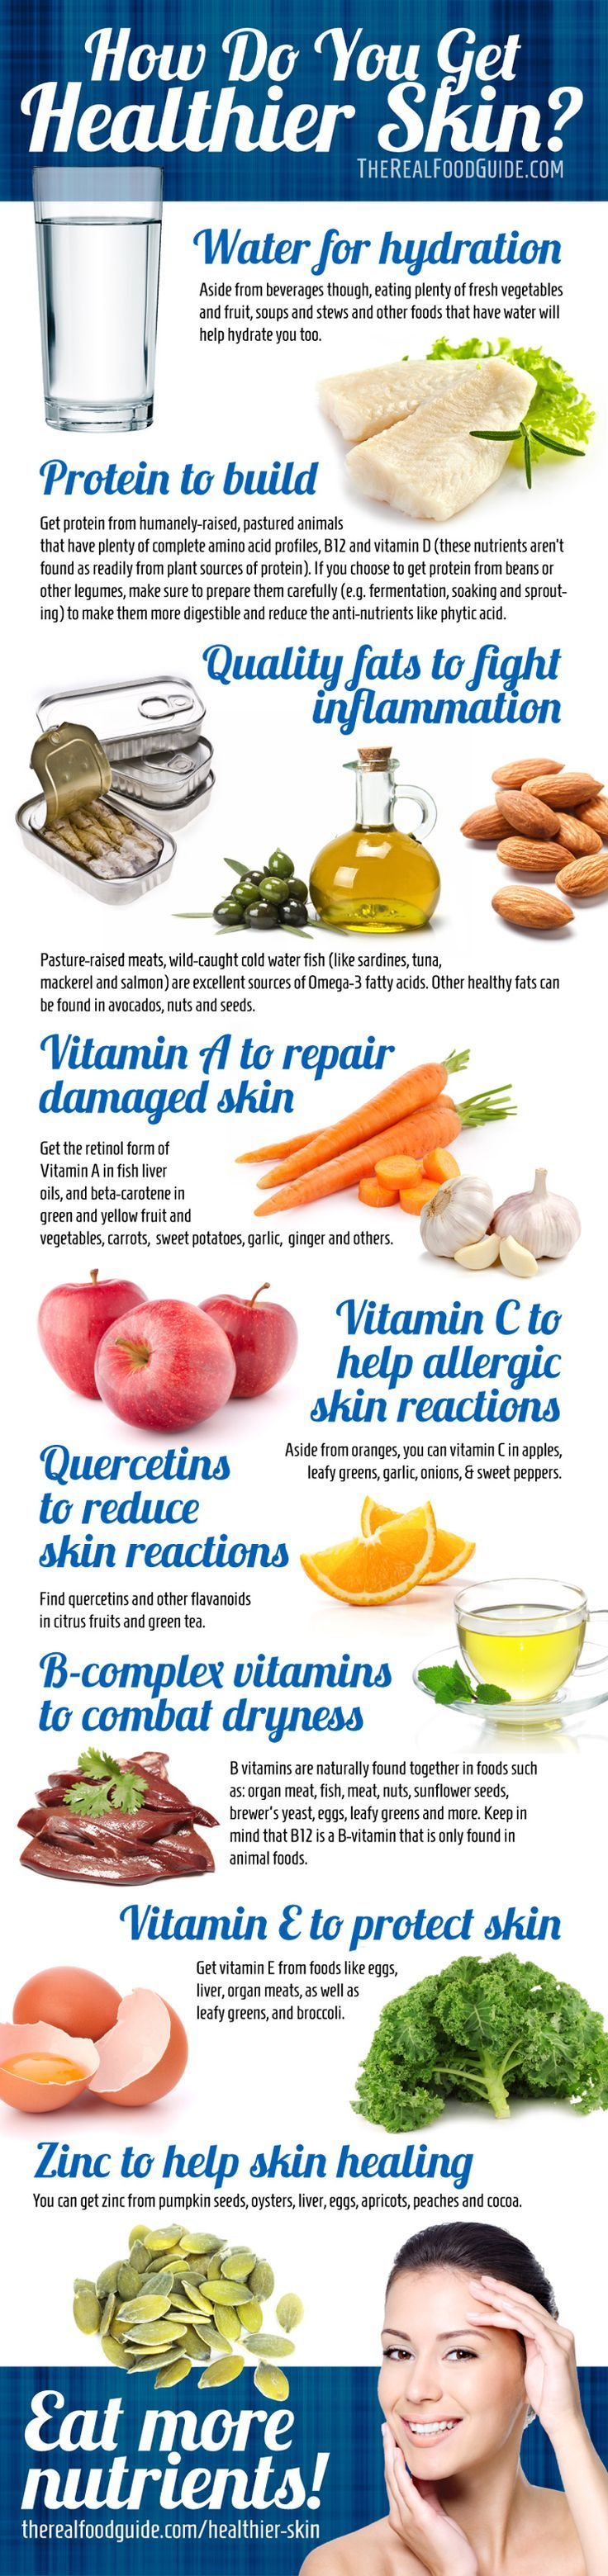 How to get clear skin: vitamins for healthy skin - The Real Food Guide therealfoodguide.com #infographic #health #skin